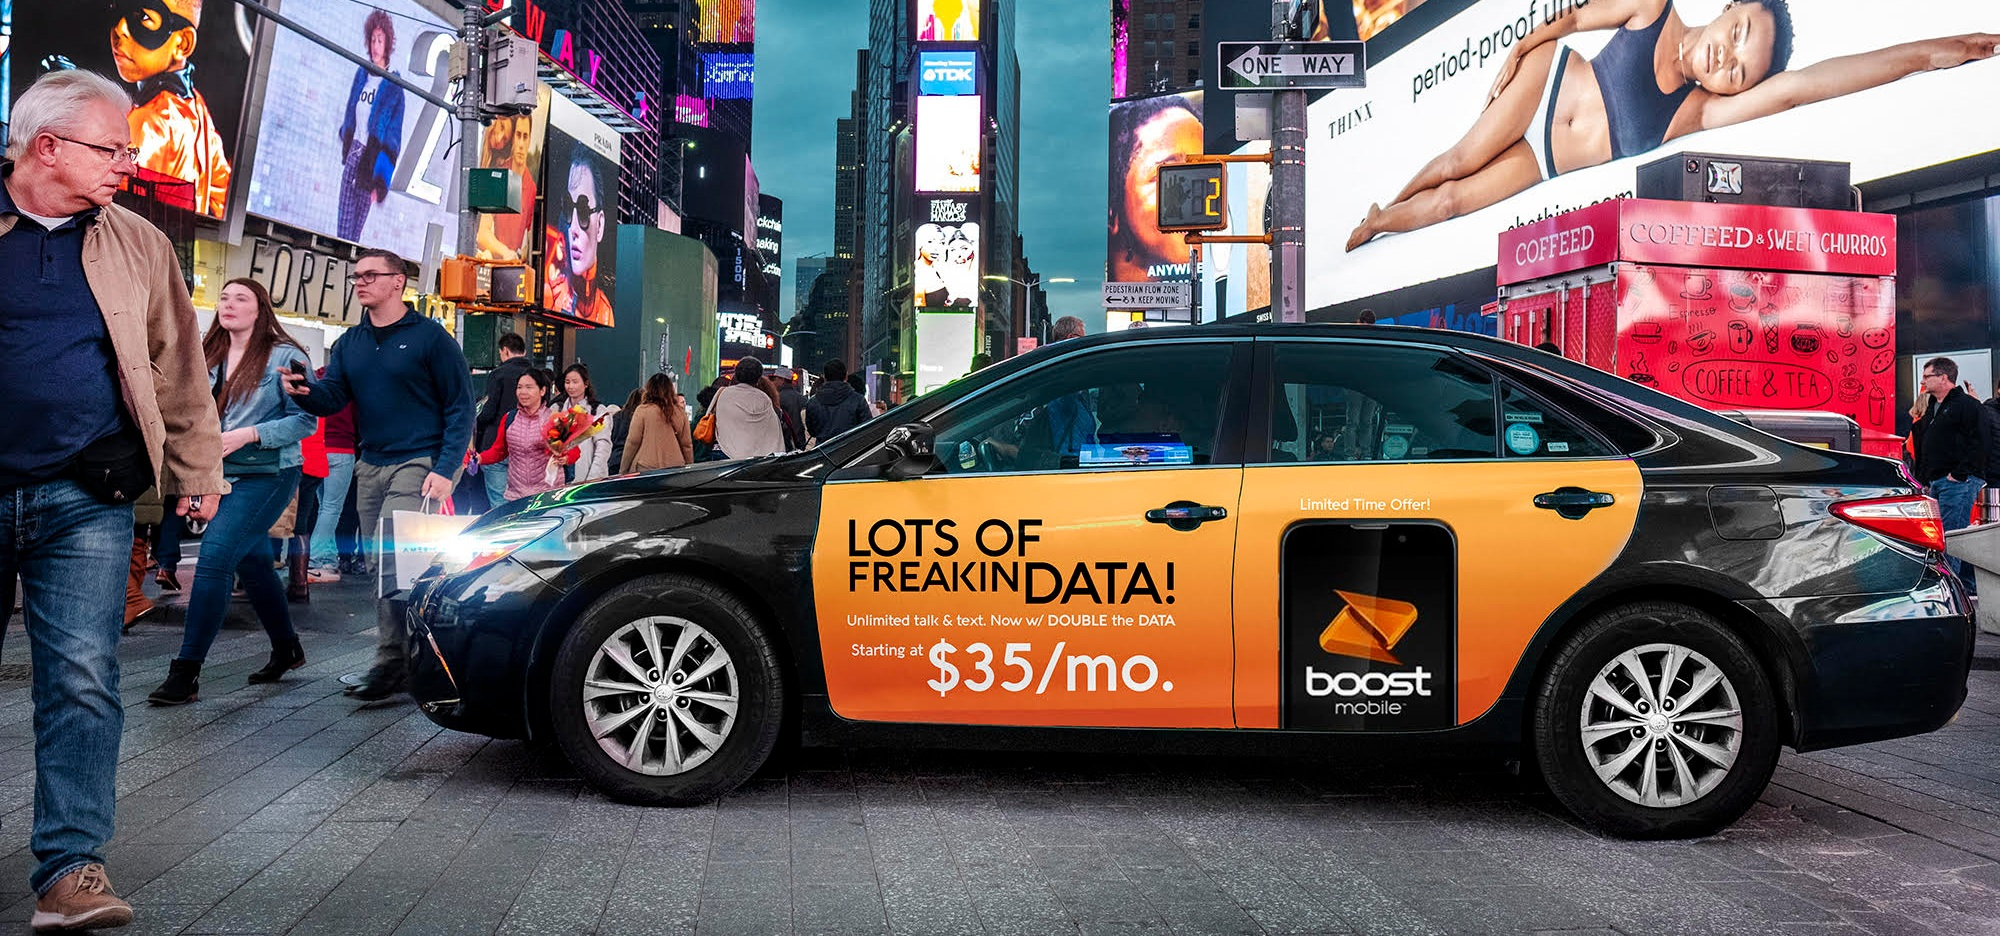 - WE'RE PROUD TO PARTNER WITH CARGO AND BOOST MOBILE TO PROVIDE RIDESHARE DRIVERS NEW WAYS TO EARN MONEY IN ATLANTA!